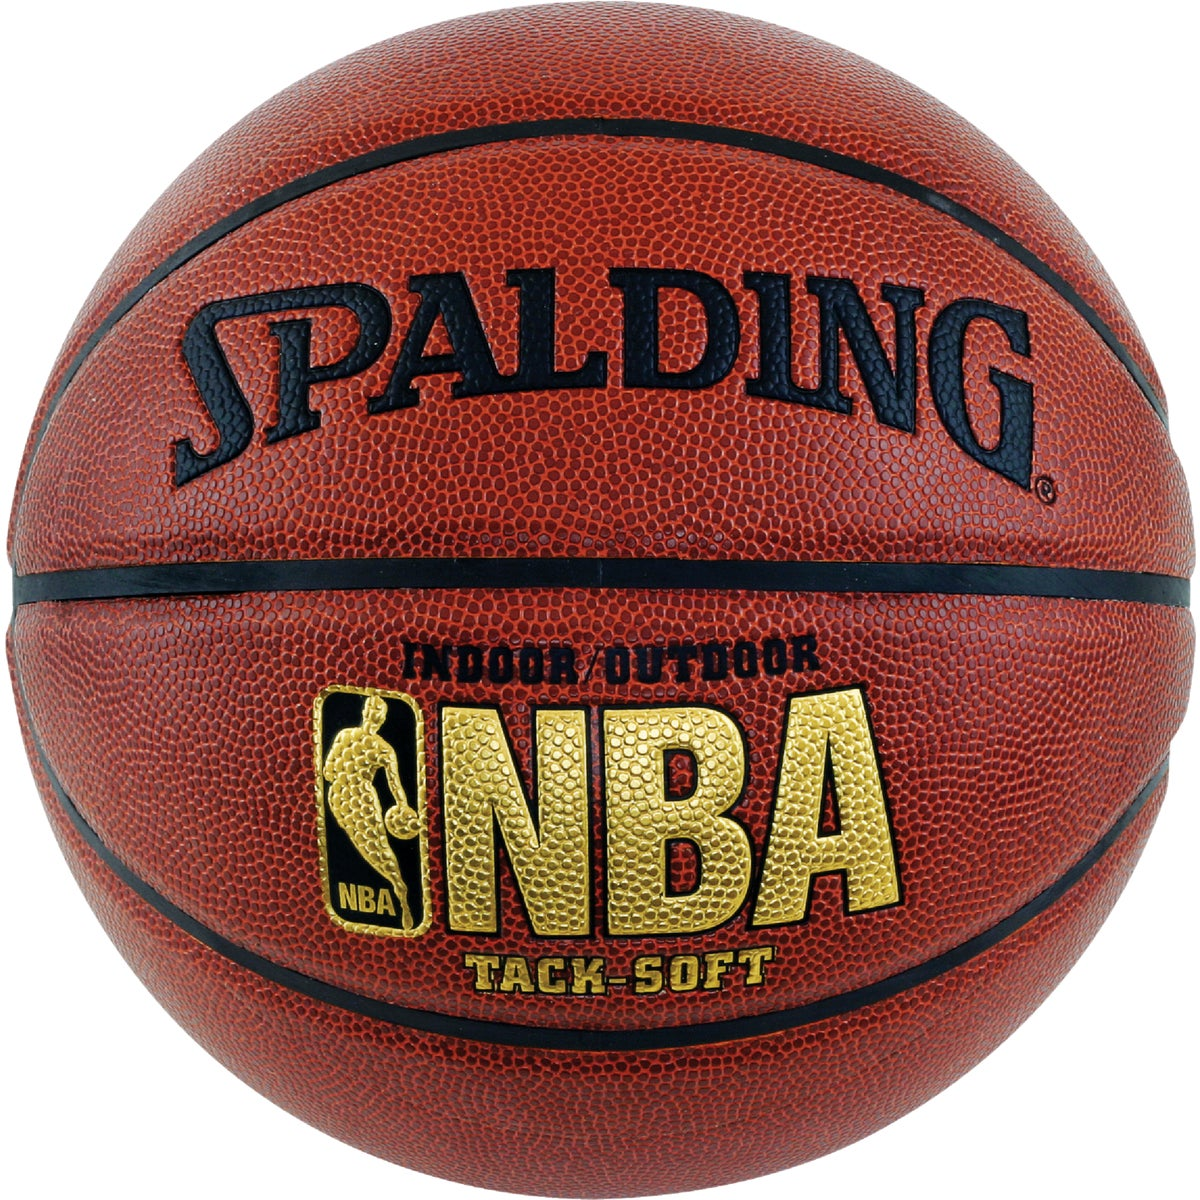 29.5 OFFICIAL BASKETBALL - 64-435 by Spalding Sports